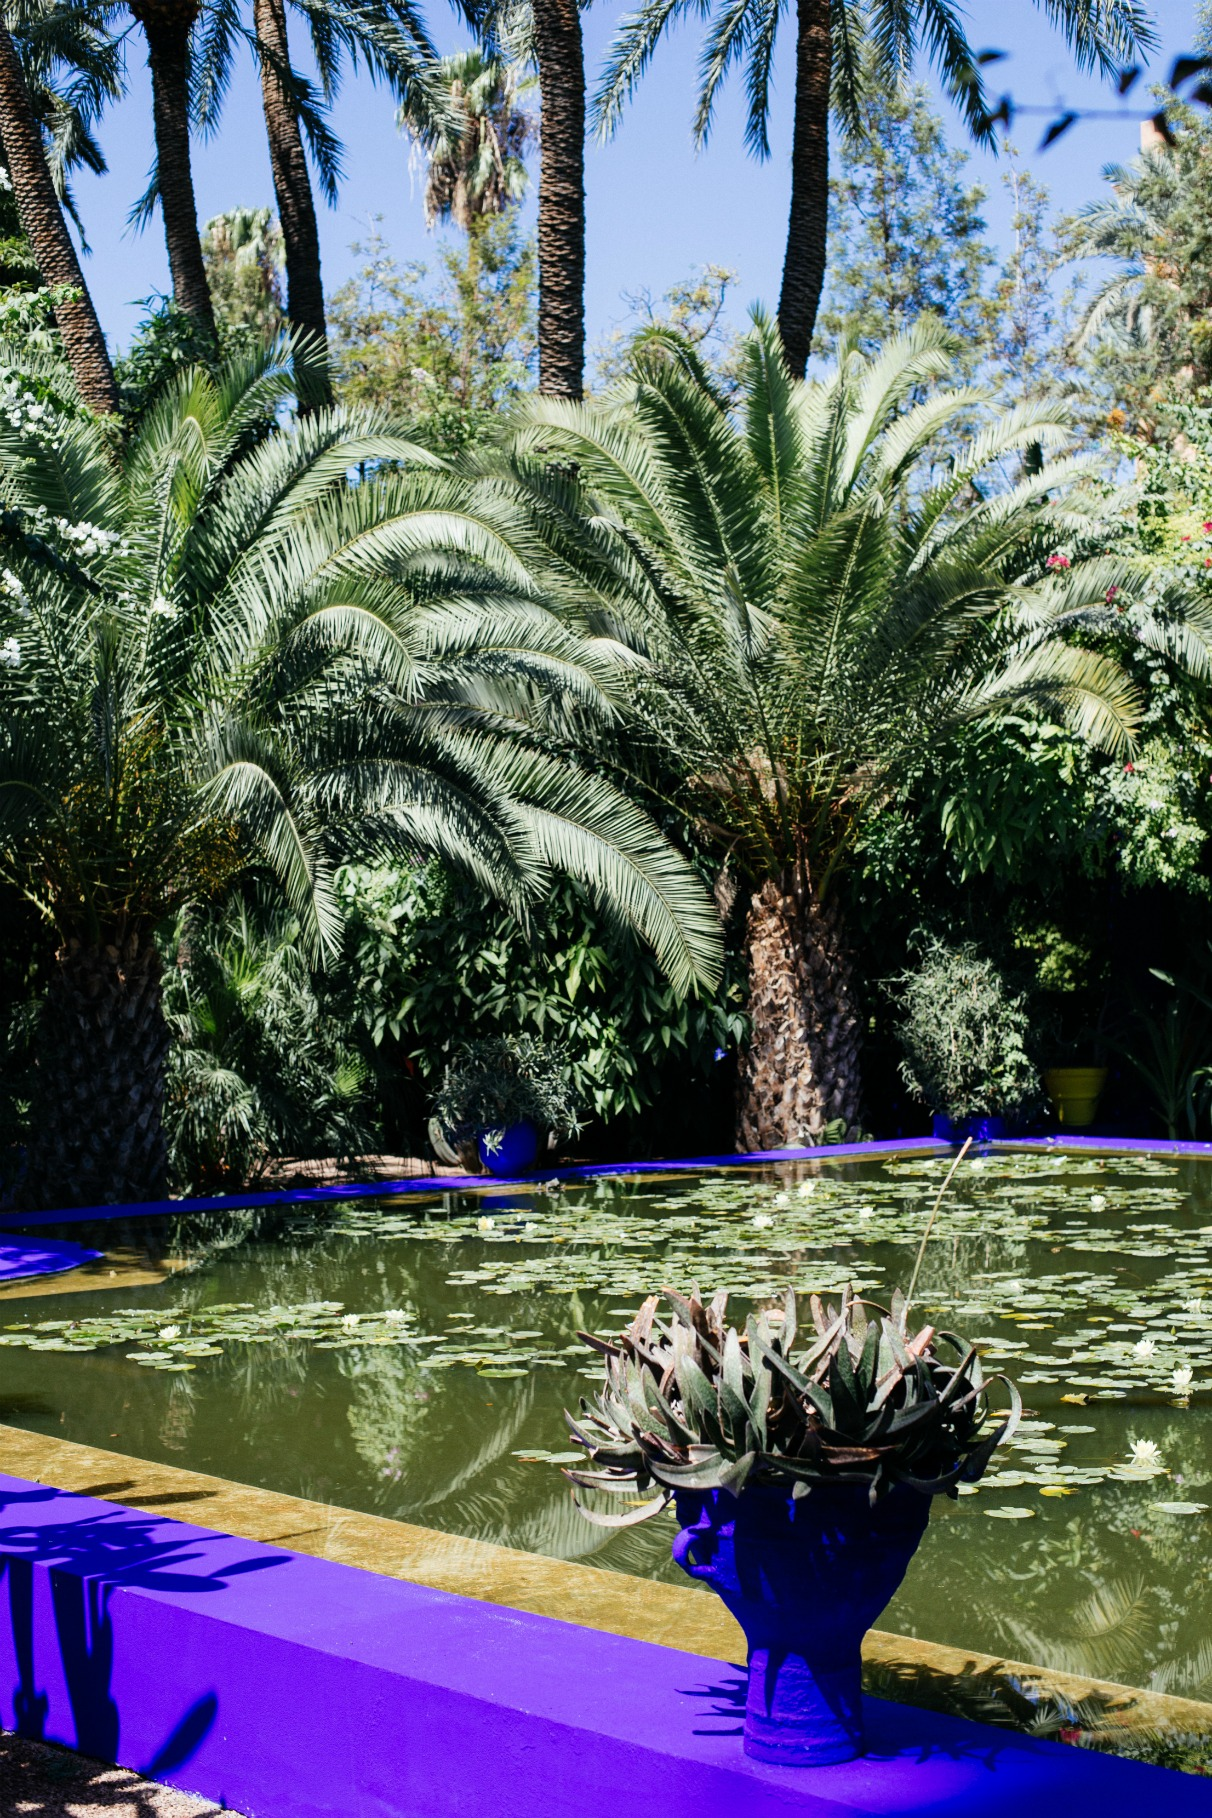 ONE WEEK IN MARRAKESH - DISI COUTUREDISI COUTURE